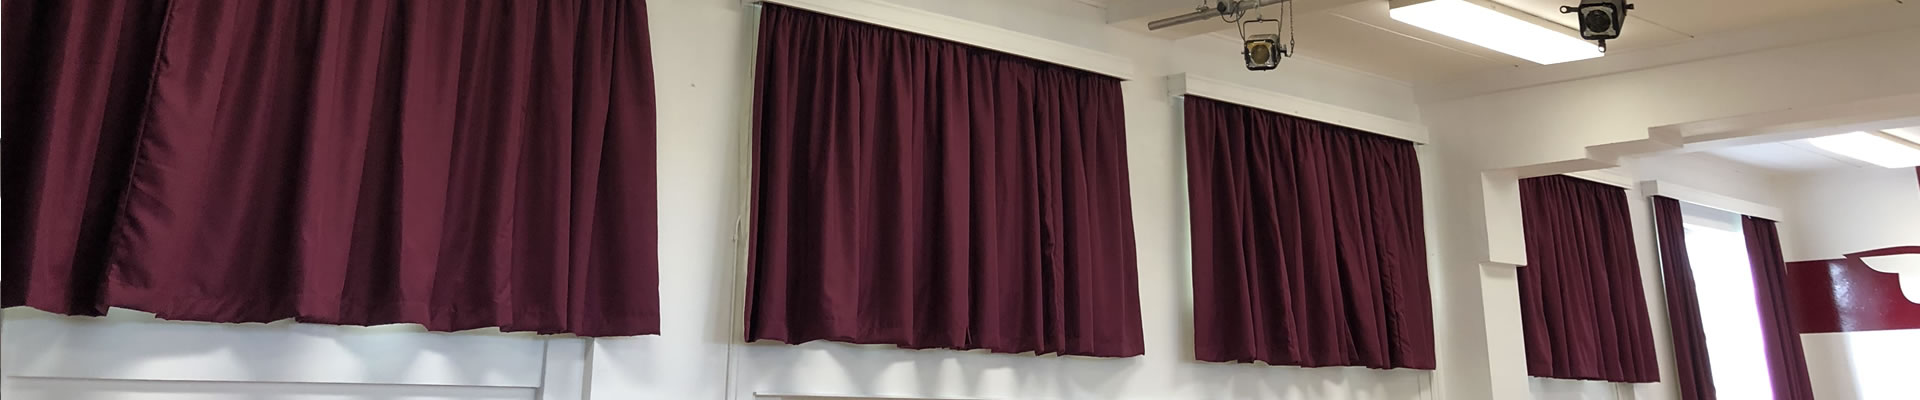 Flame Retardant Curtains for Schools Colleges Education